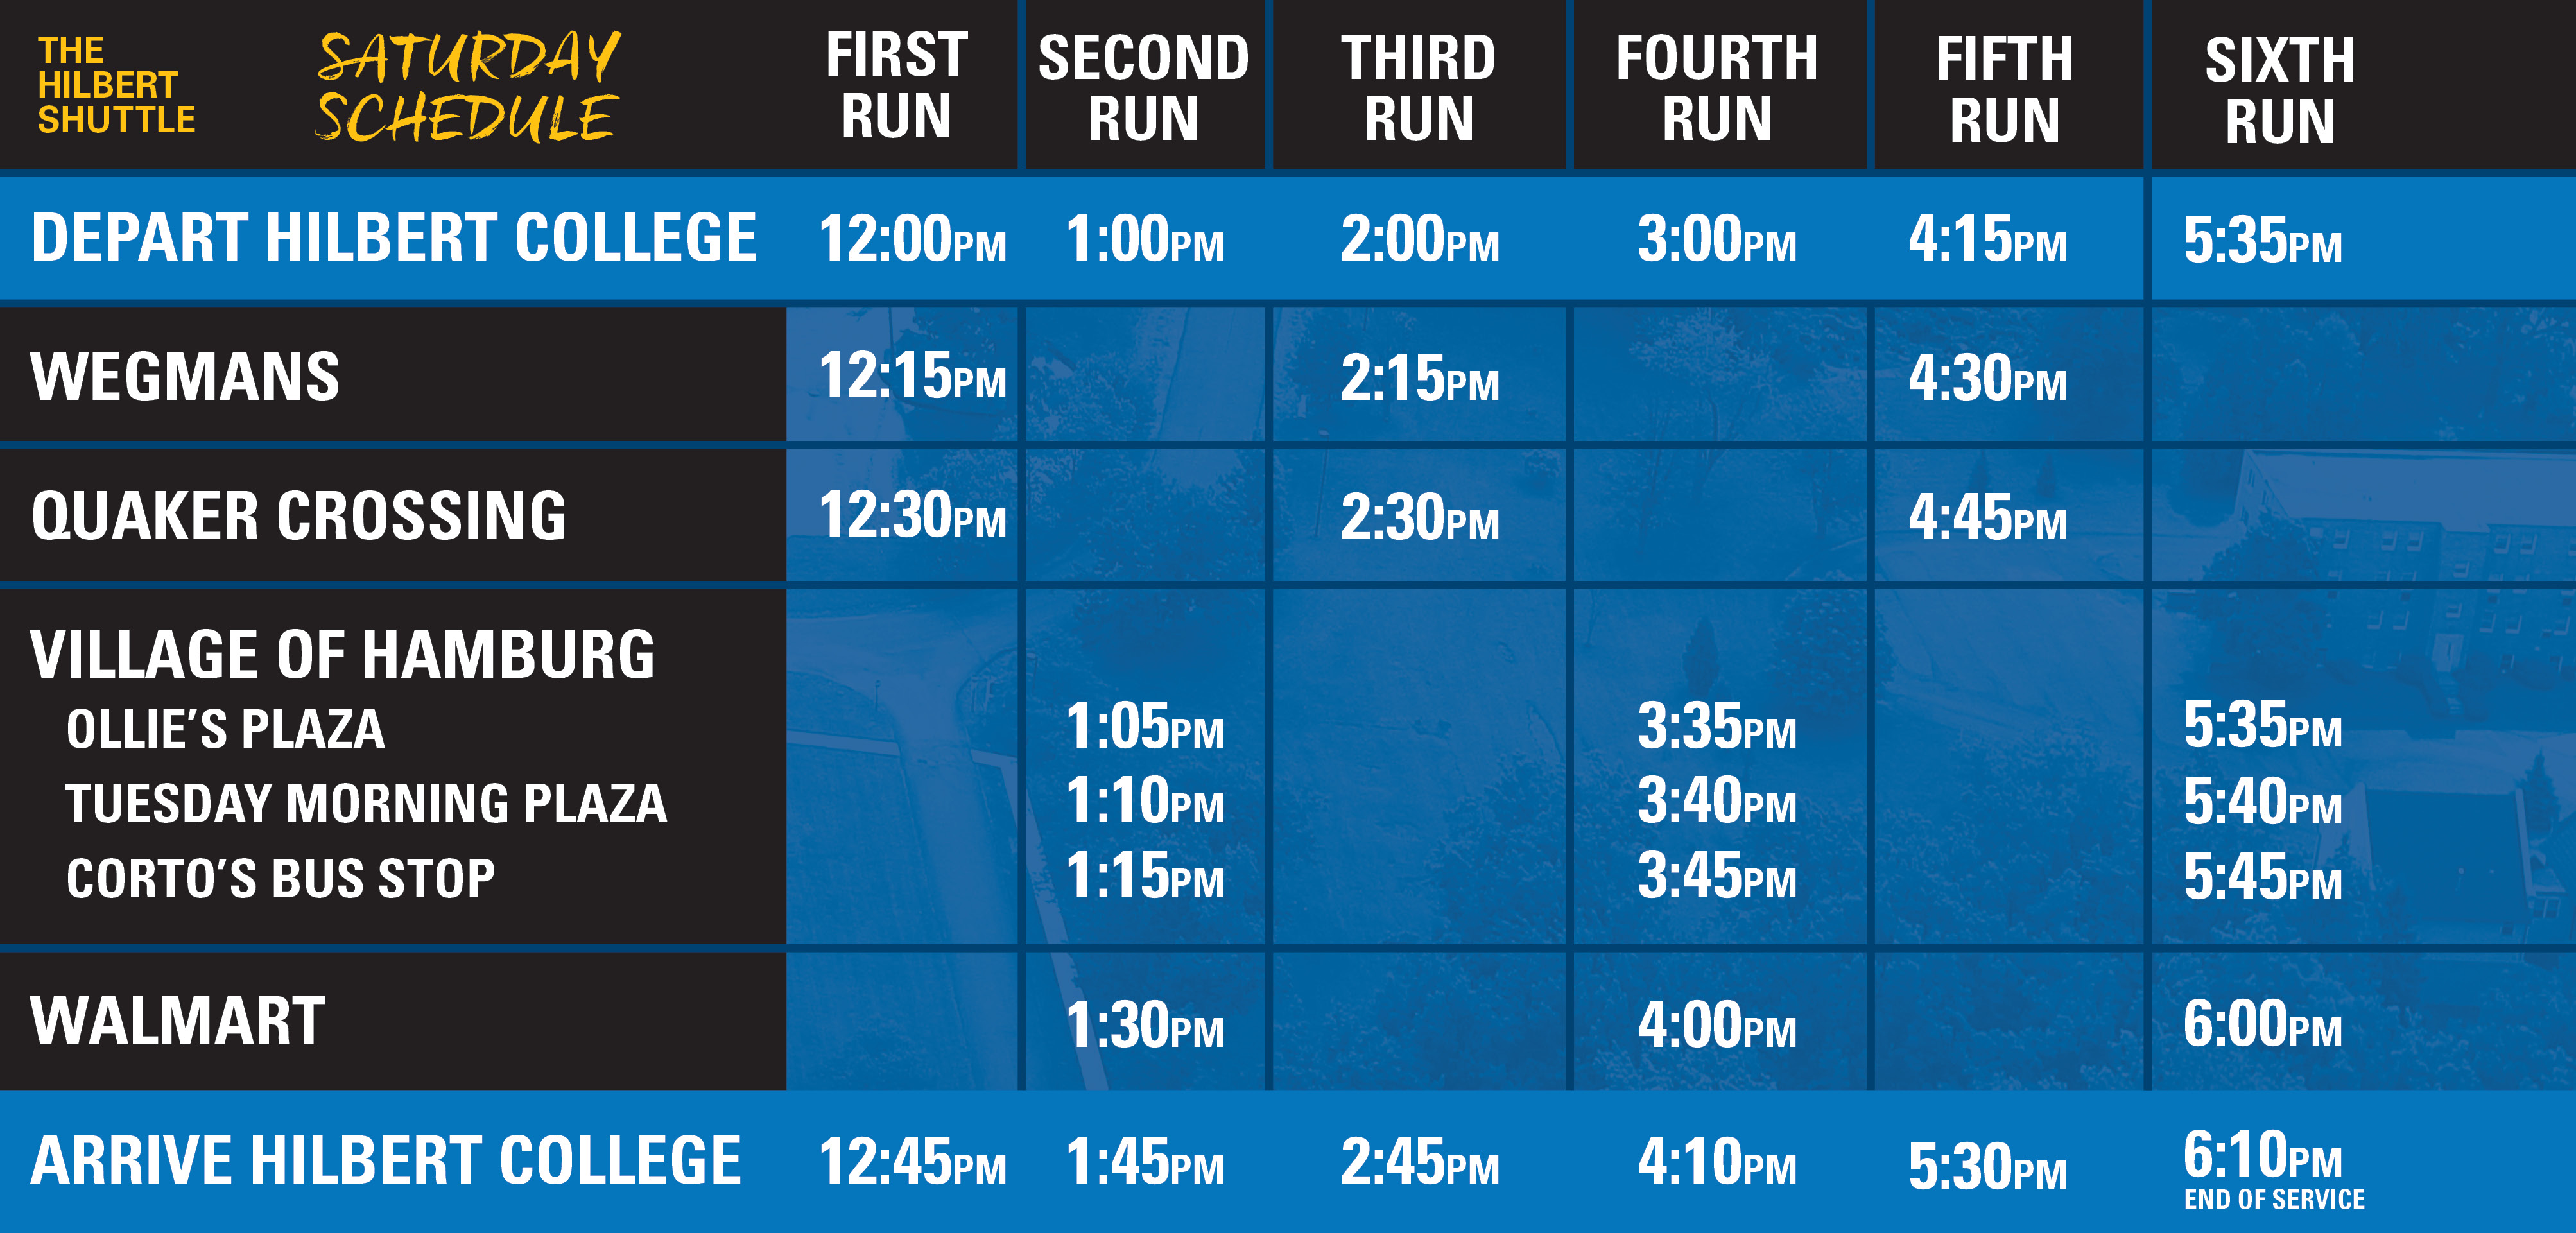 Picture View of Saturday Shuttle Schedule - Accessible version of Schedule can be downloaded below